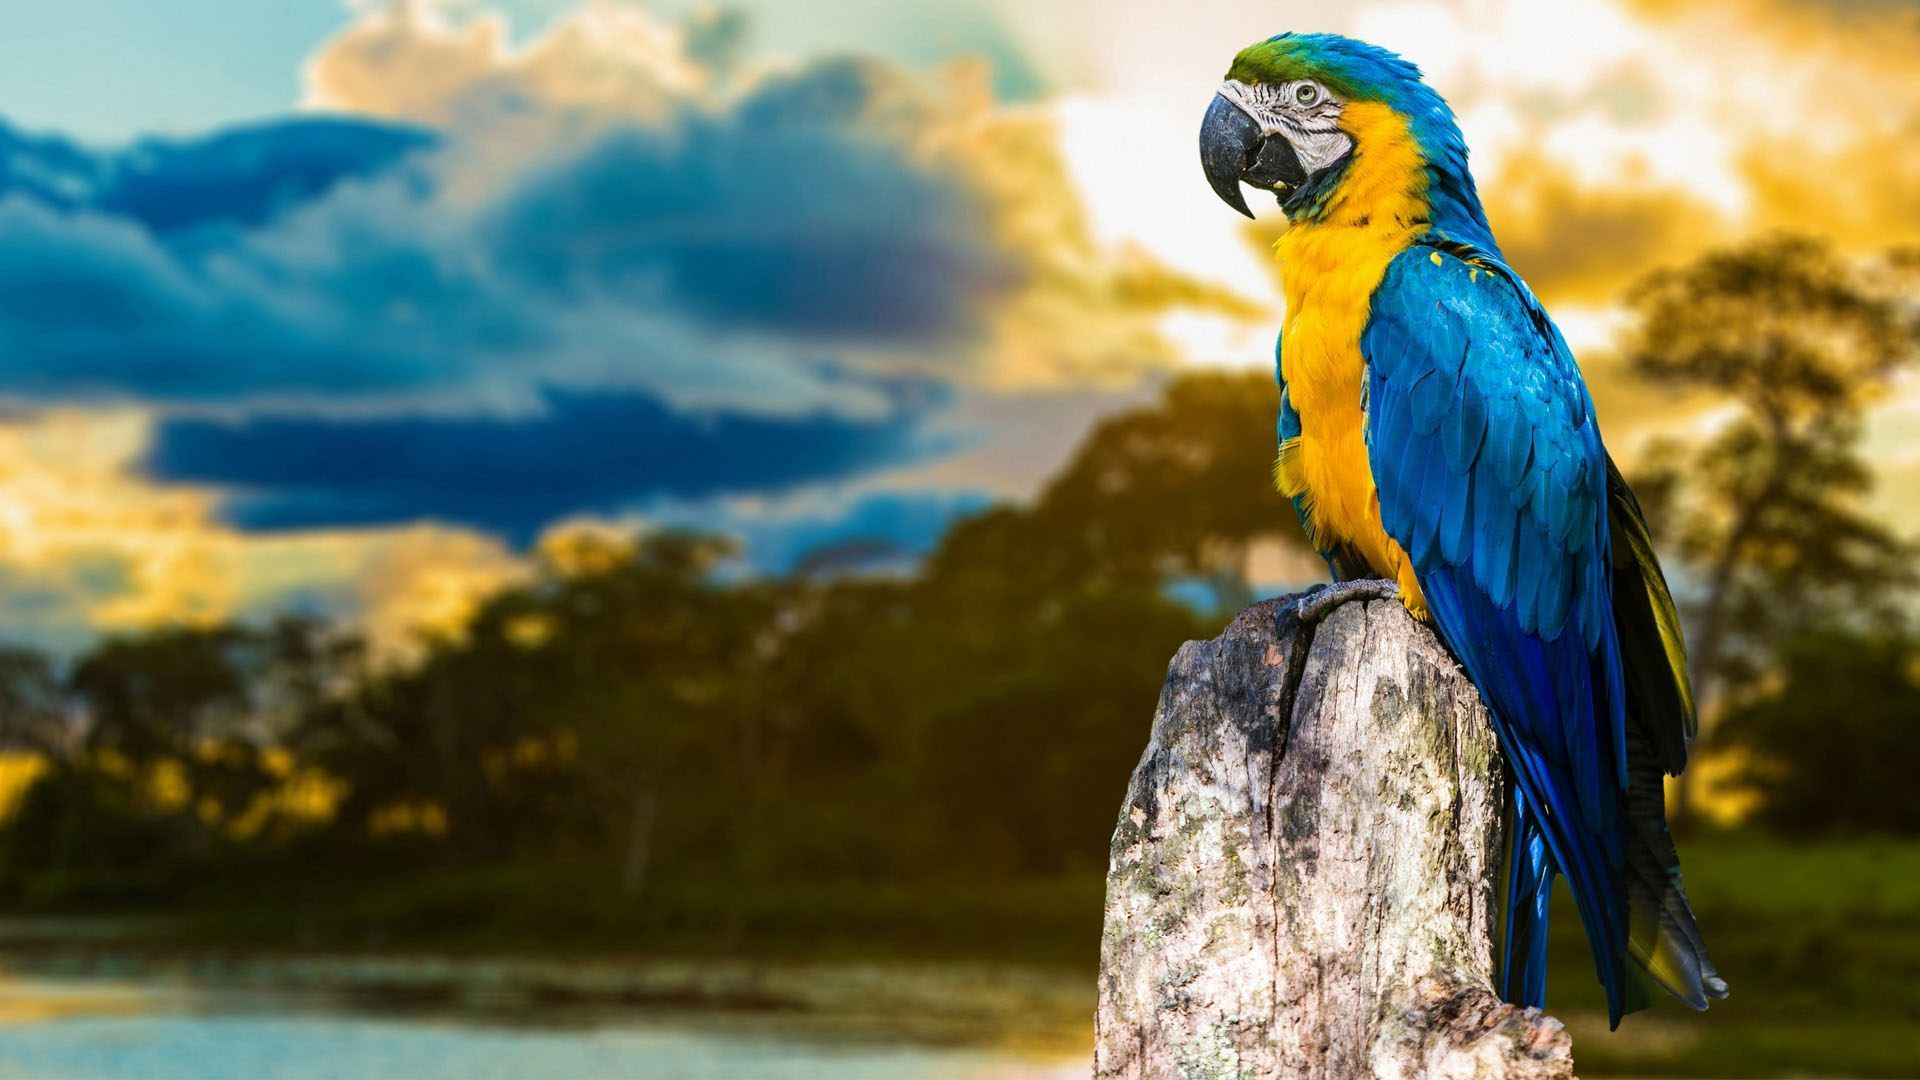 Dwnld Cute Little Bird Walpaper Free Fr Mobile: Macaw Bird Big Parrot Wallpaper For Desktop And Mobile